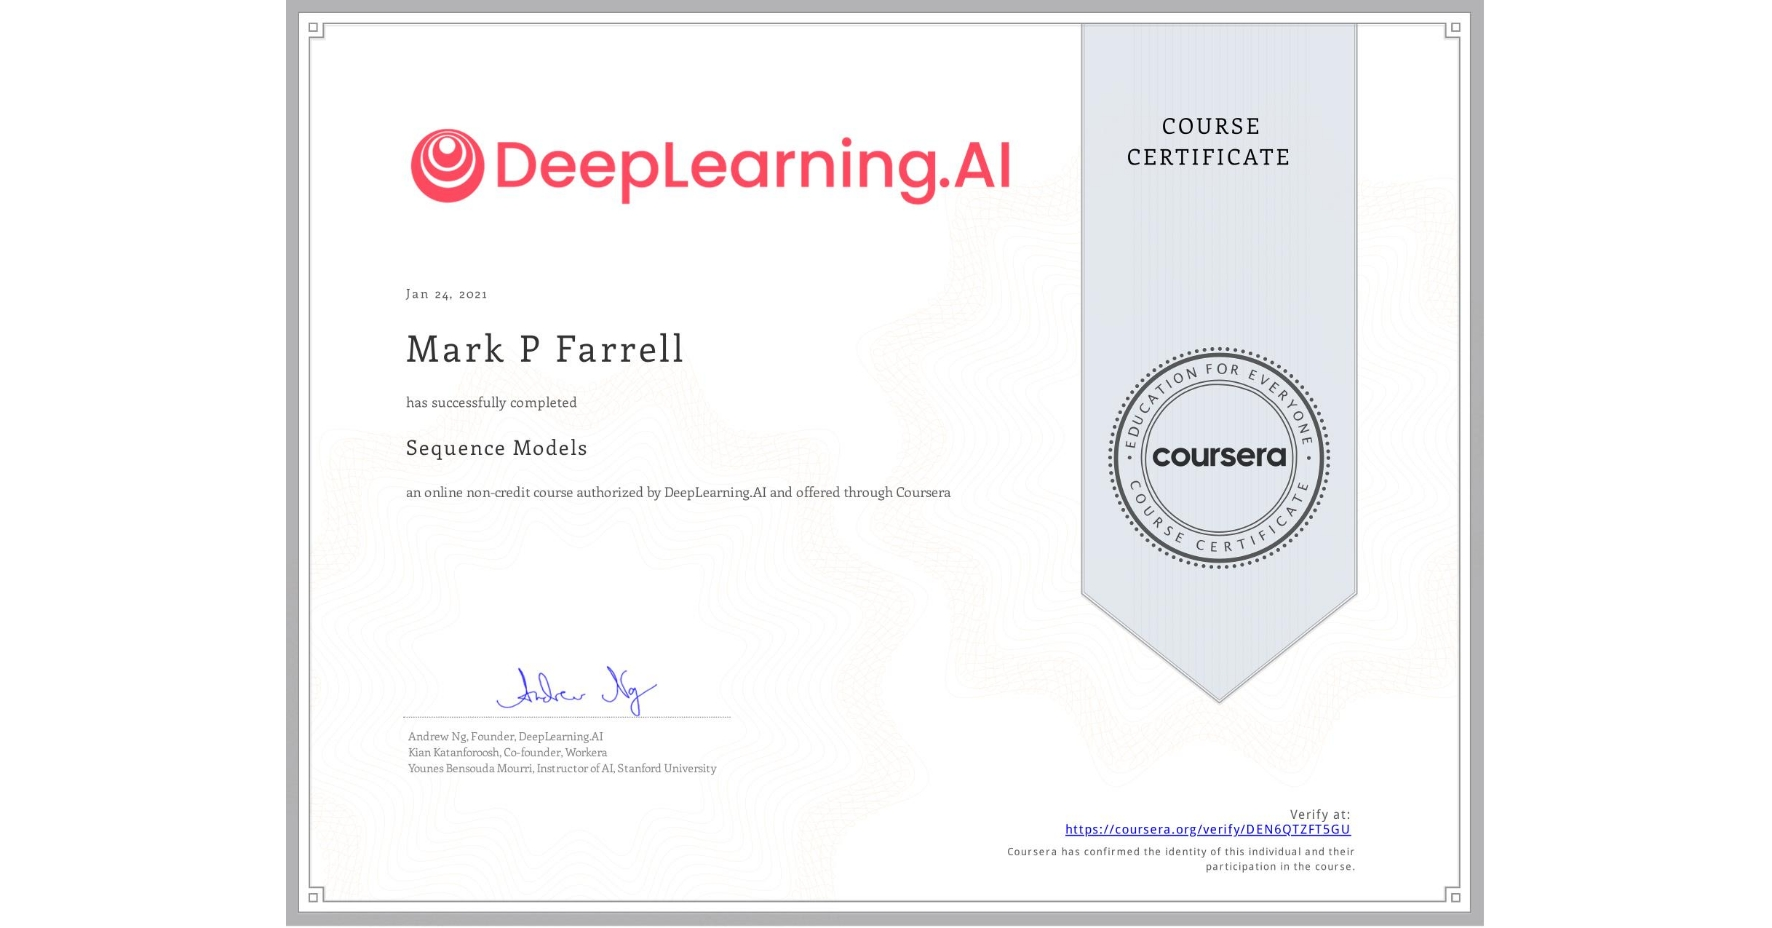 View certificate for Mark P Farrell, Sequence Models, an online non-credit course authorized by DeepLearning.AI and offered through Coursera